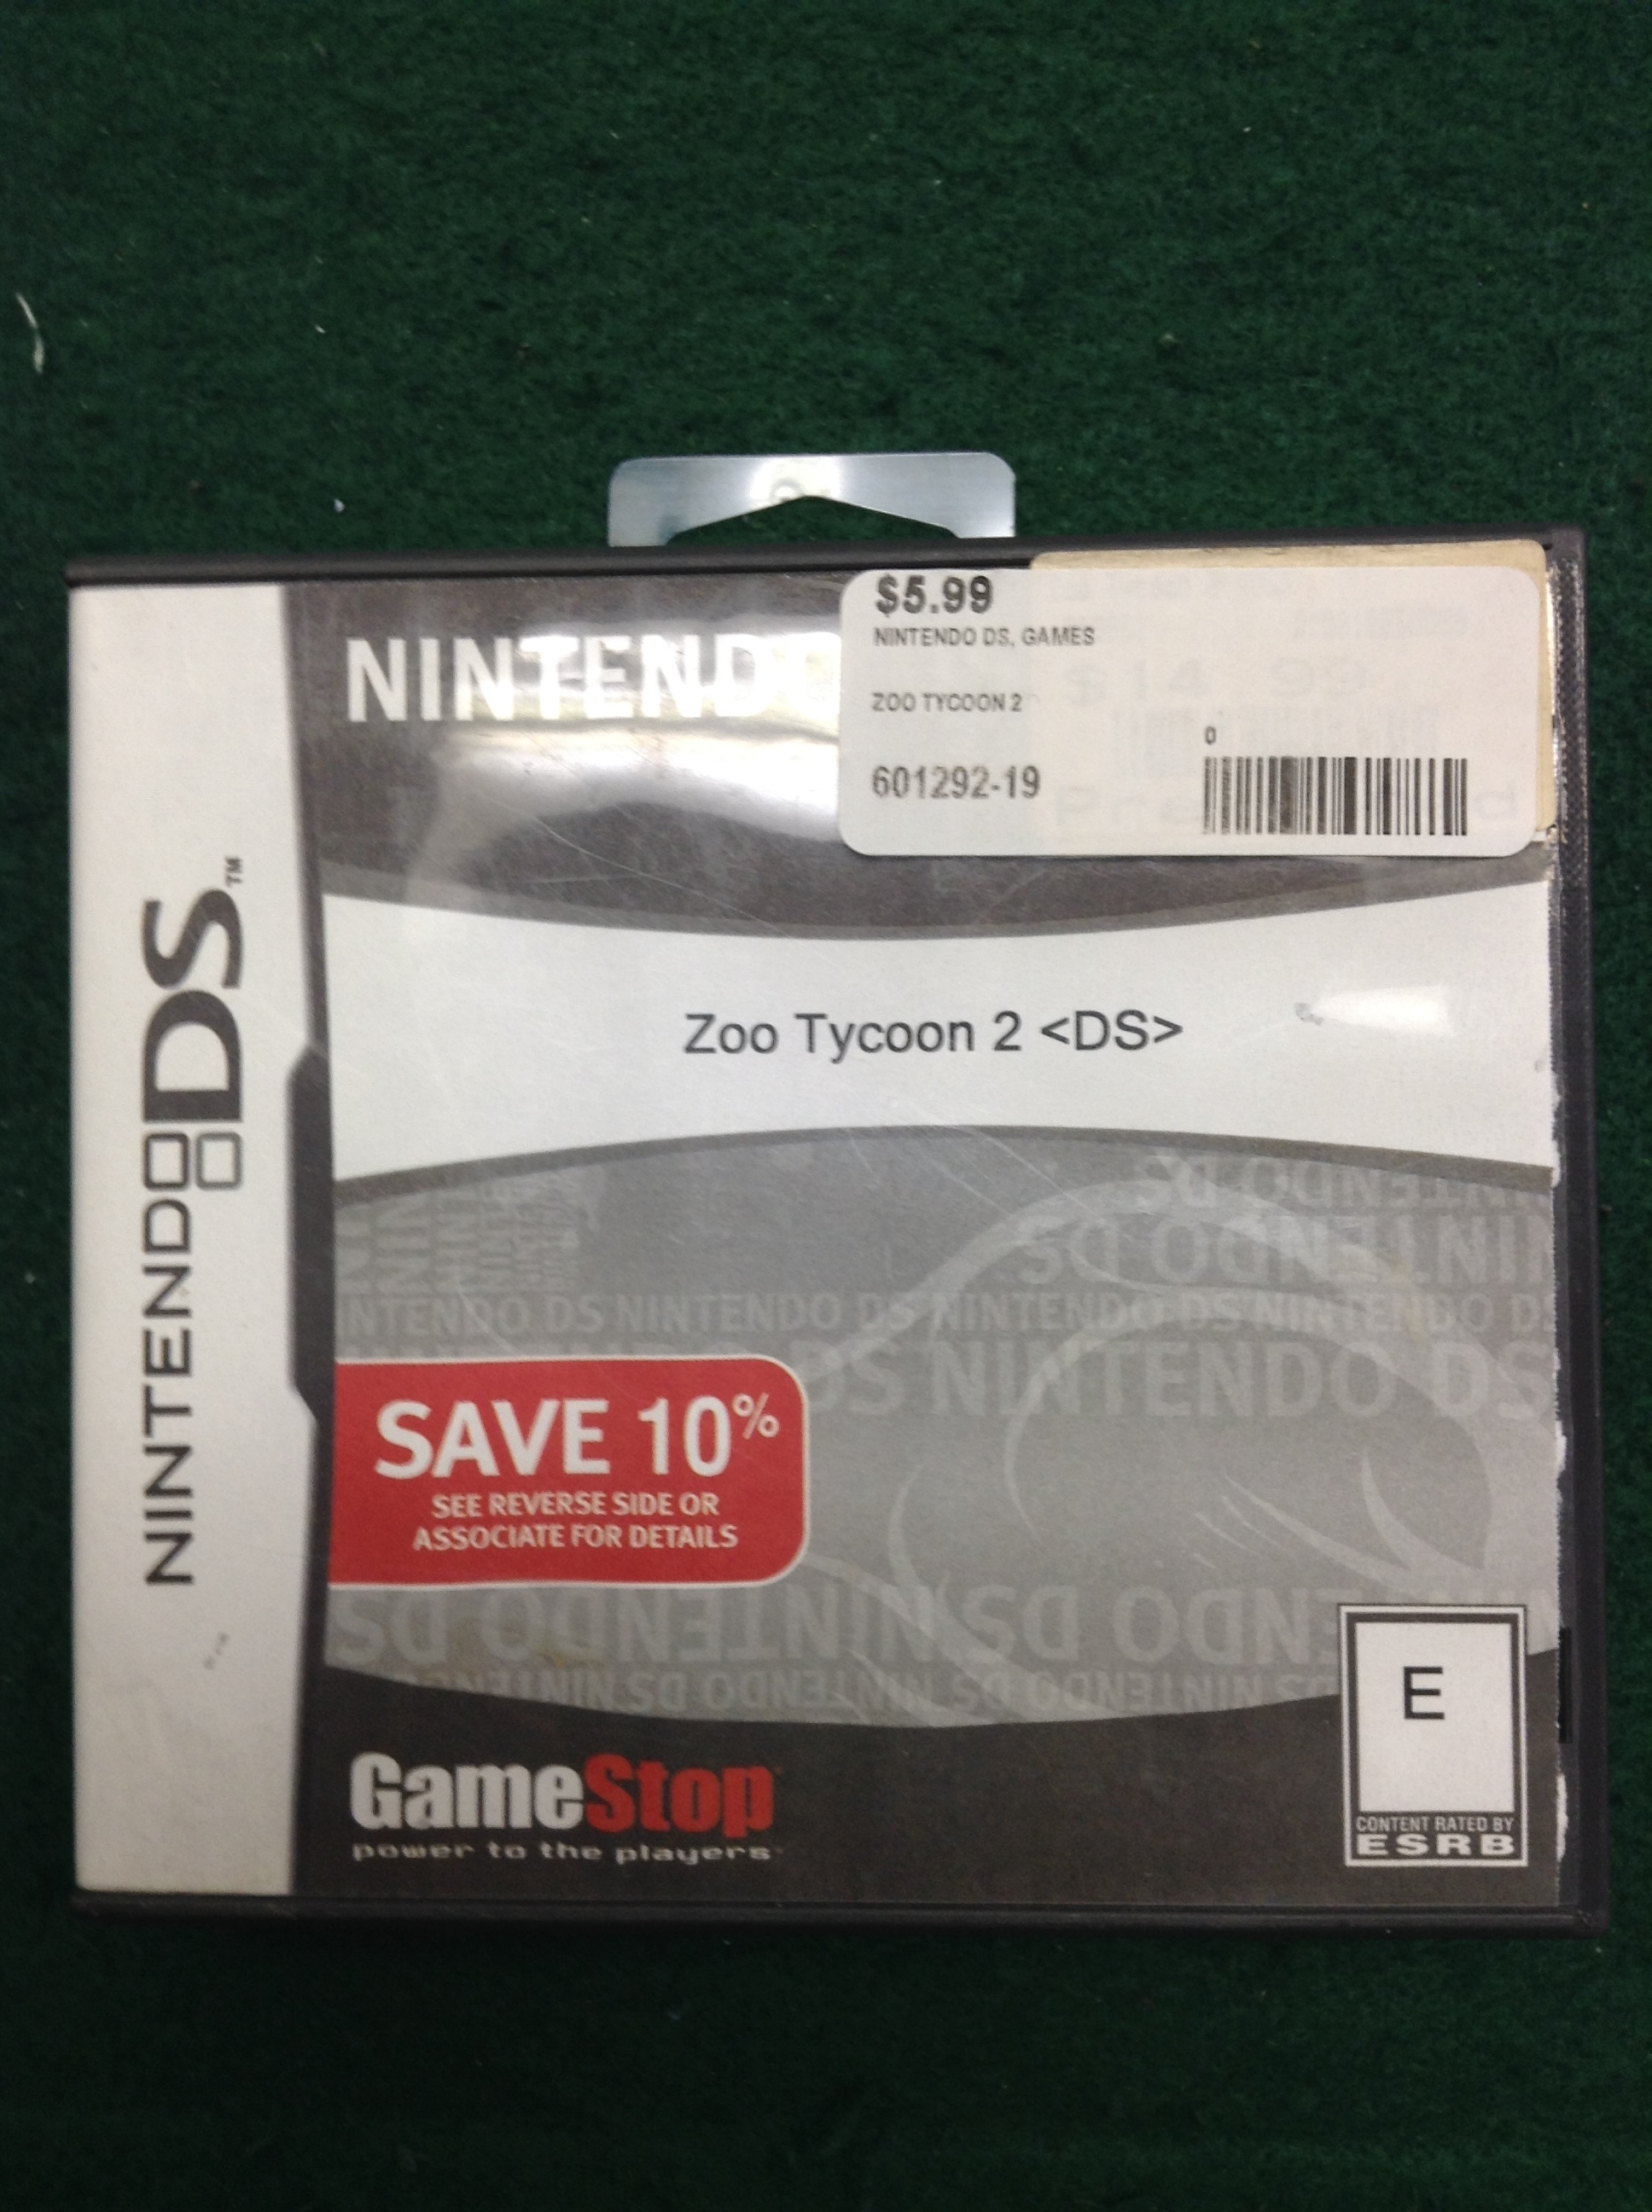 ZOO TYCOON 2 FOR NINTENDO DS